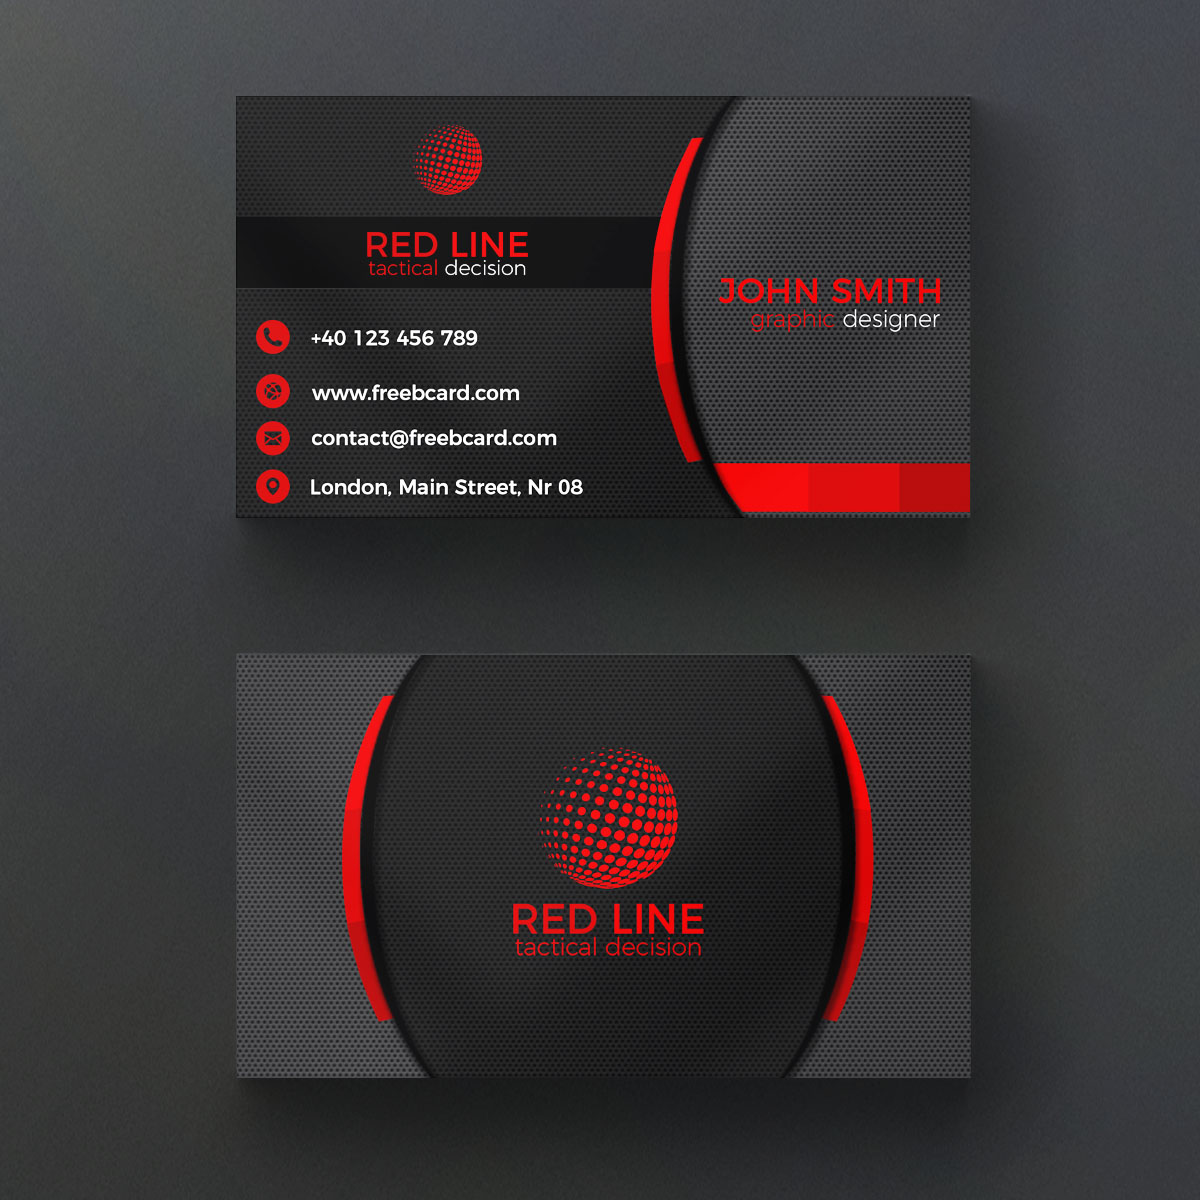 2 PROFESSIONAL Business Card Design